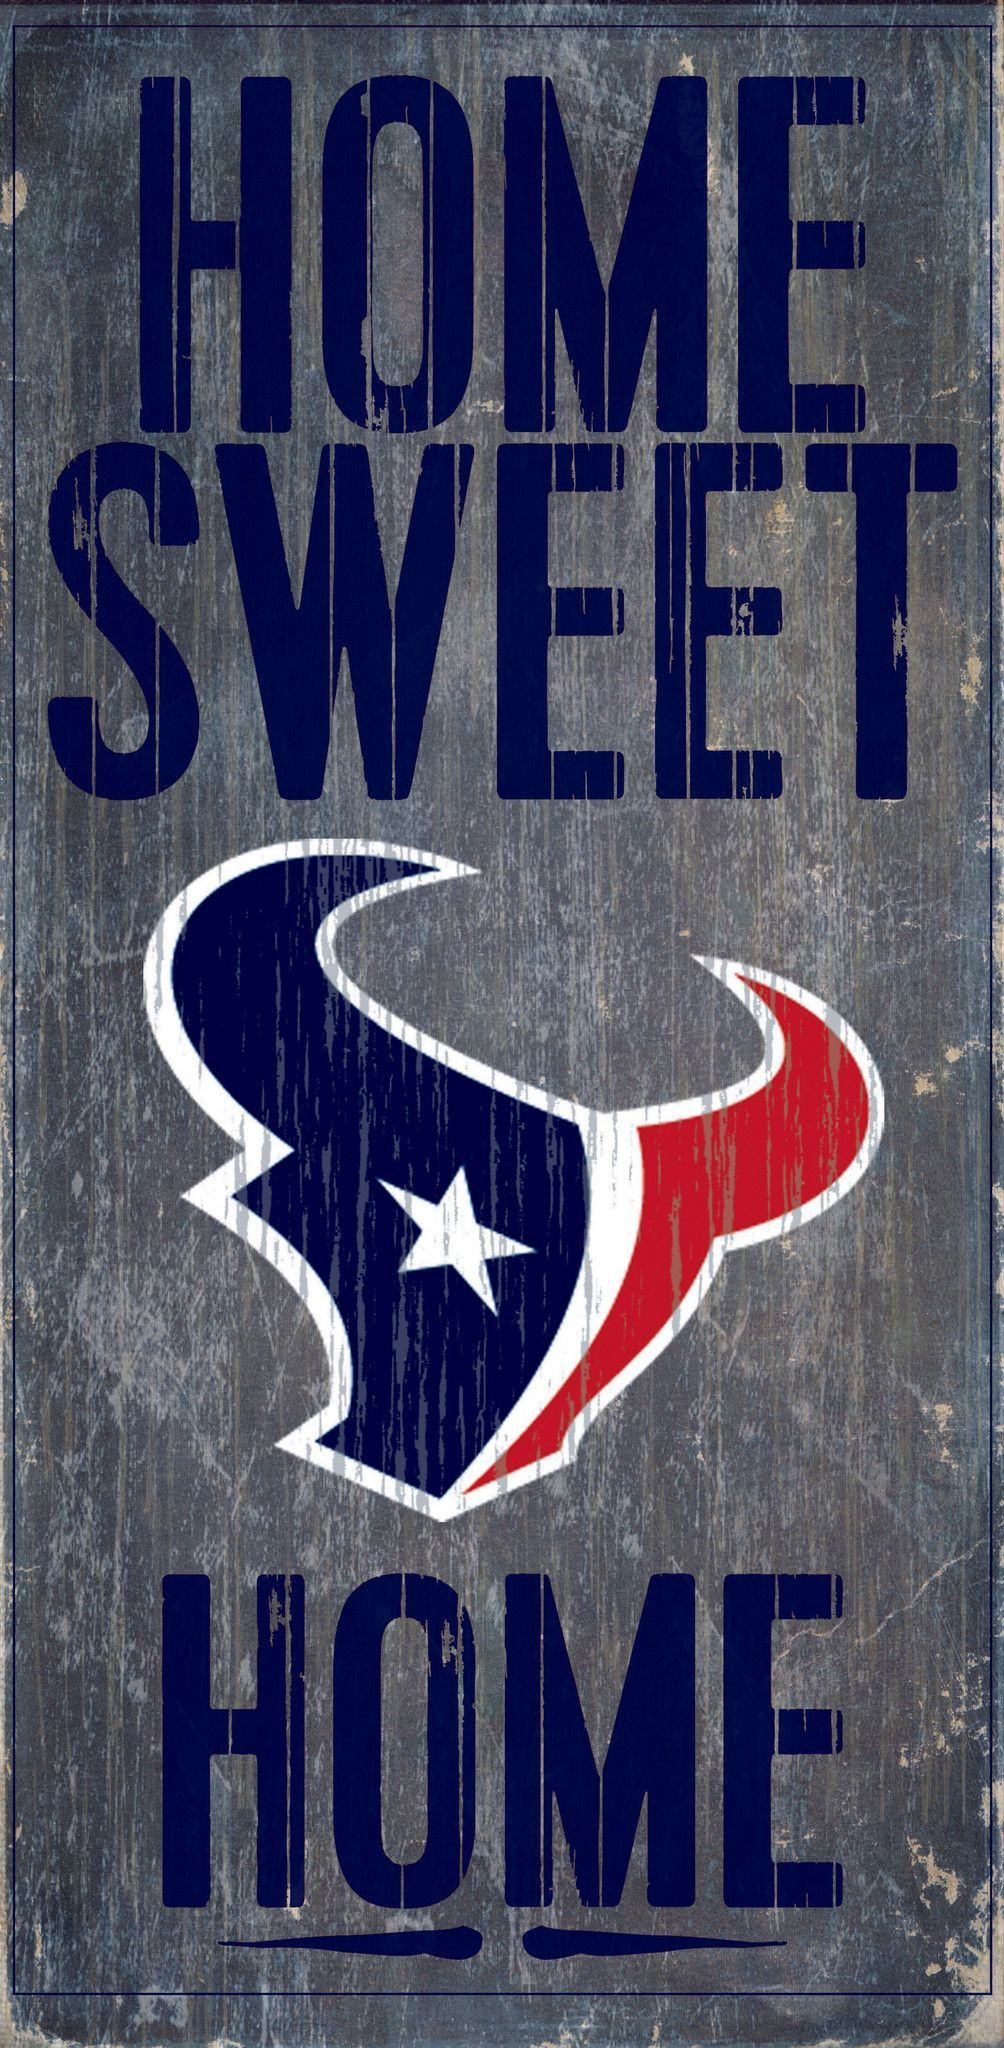 Welcome nfl fans enjoy your houston texans officially licensed team tailgationg gear houston texans wood sign home sweet home